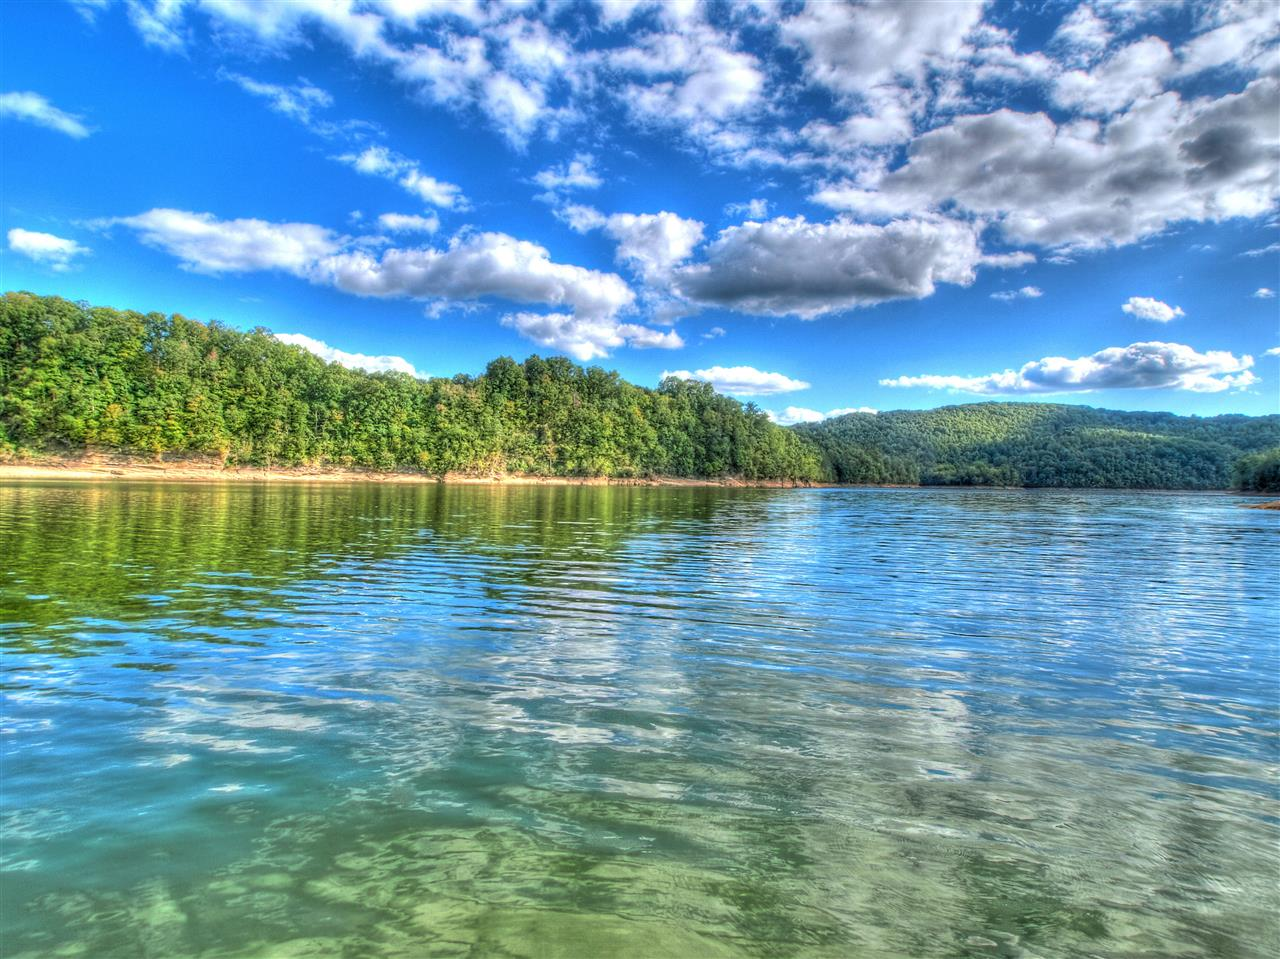 Beautiful clear water of Norris Lake in Claibourne County in East Tennessee.